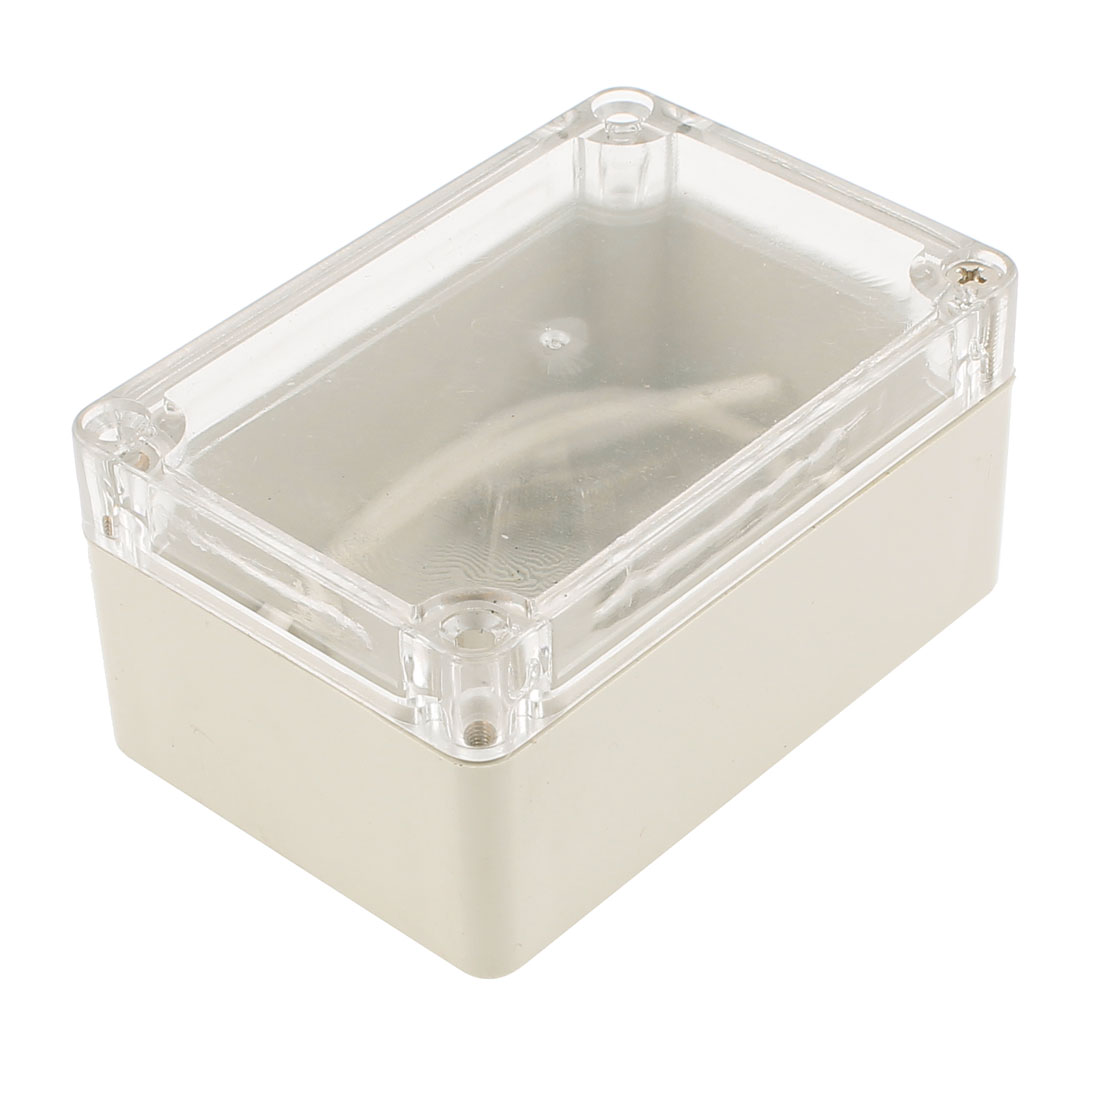 100x 68x 50mm Dustproof IP65 Junction Box DIY Terminal Connect Enclosure Clear Cover